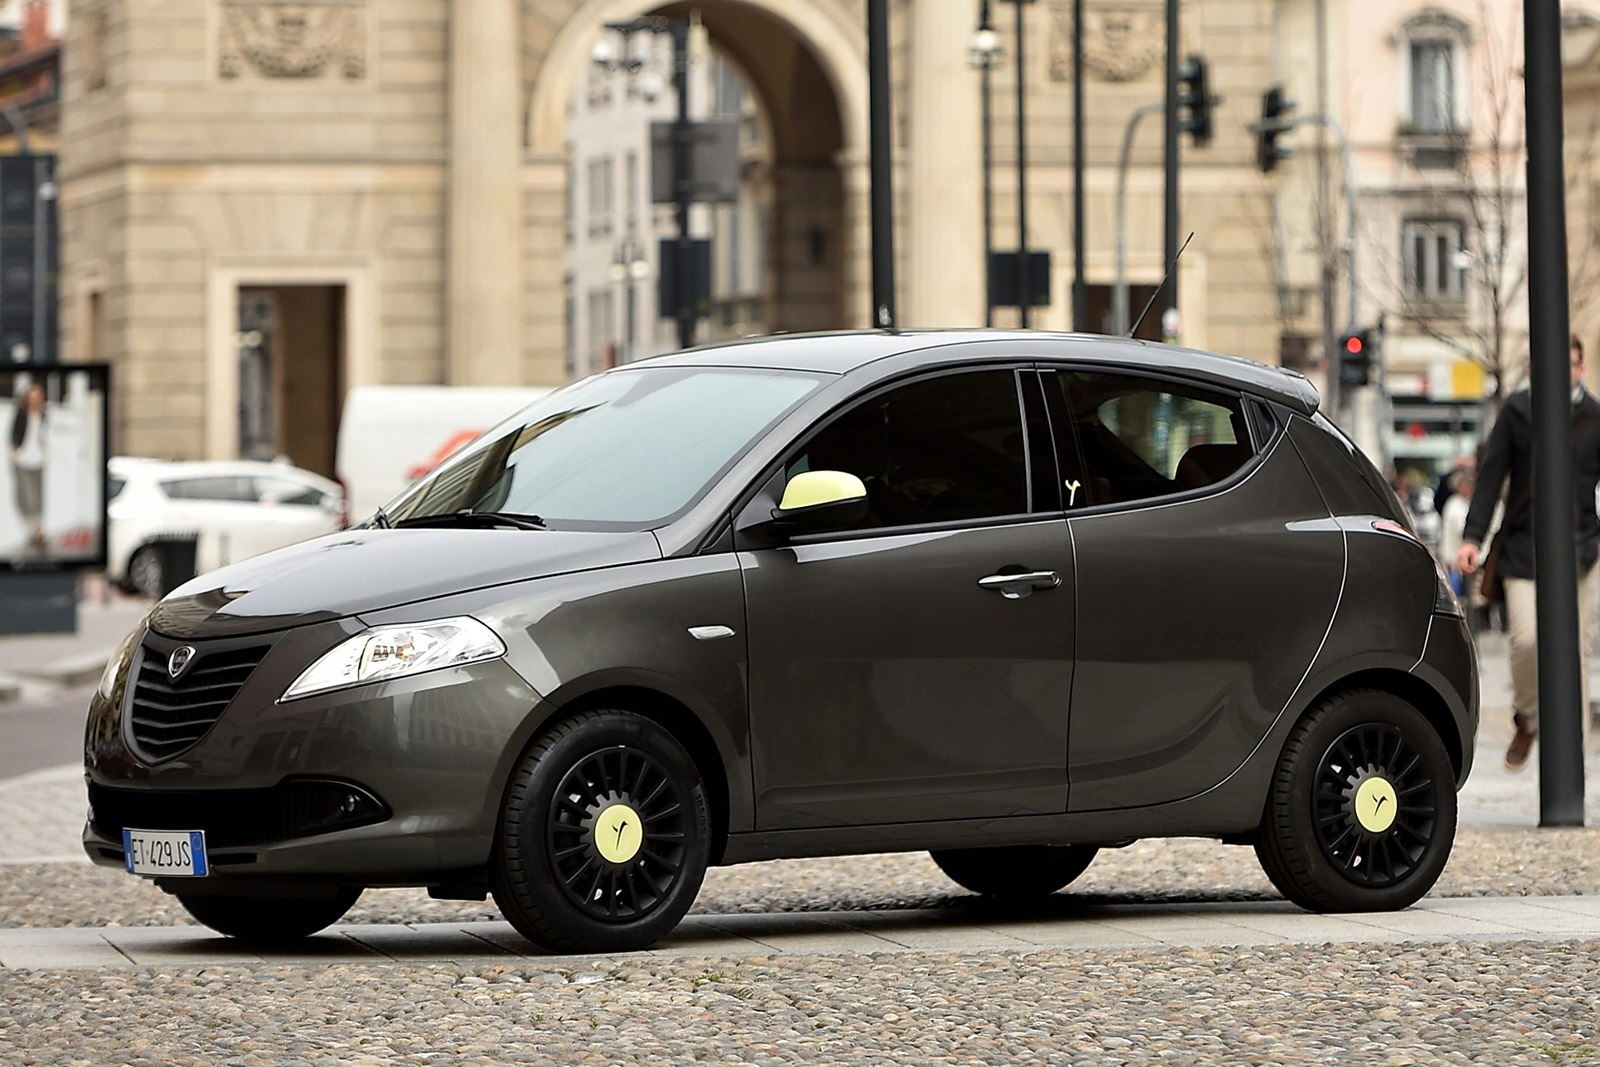 2018 Lancia Ypsilon photo - 3